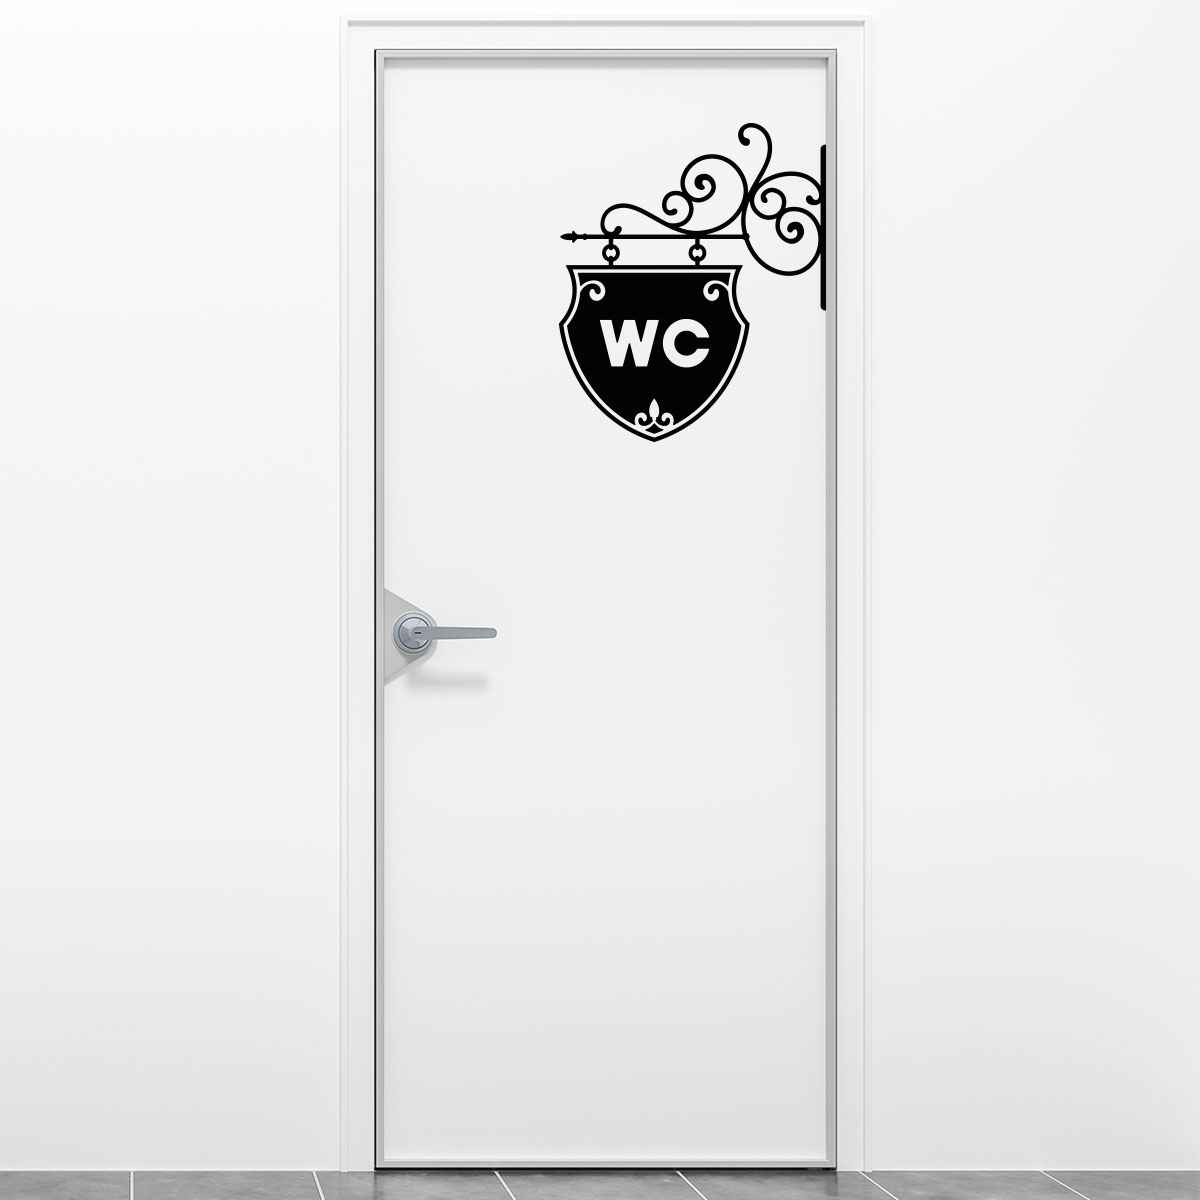 Https Www Ambiance Sticker Com En Wall Decals Signage For The